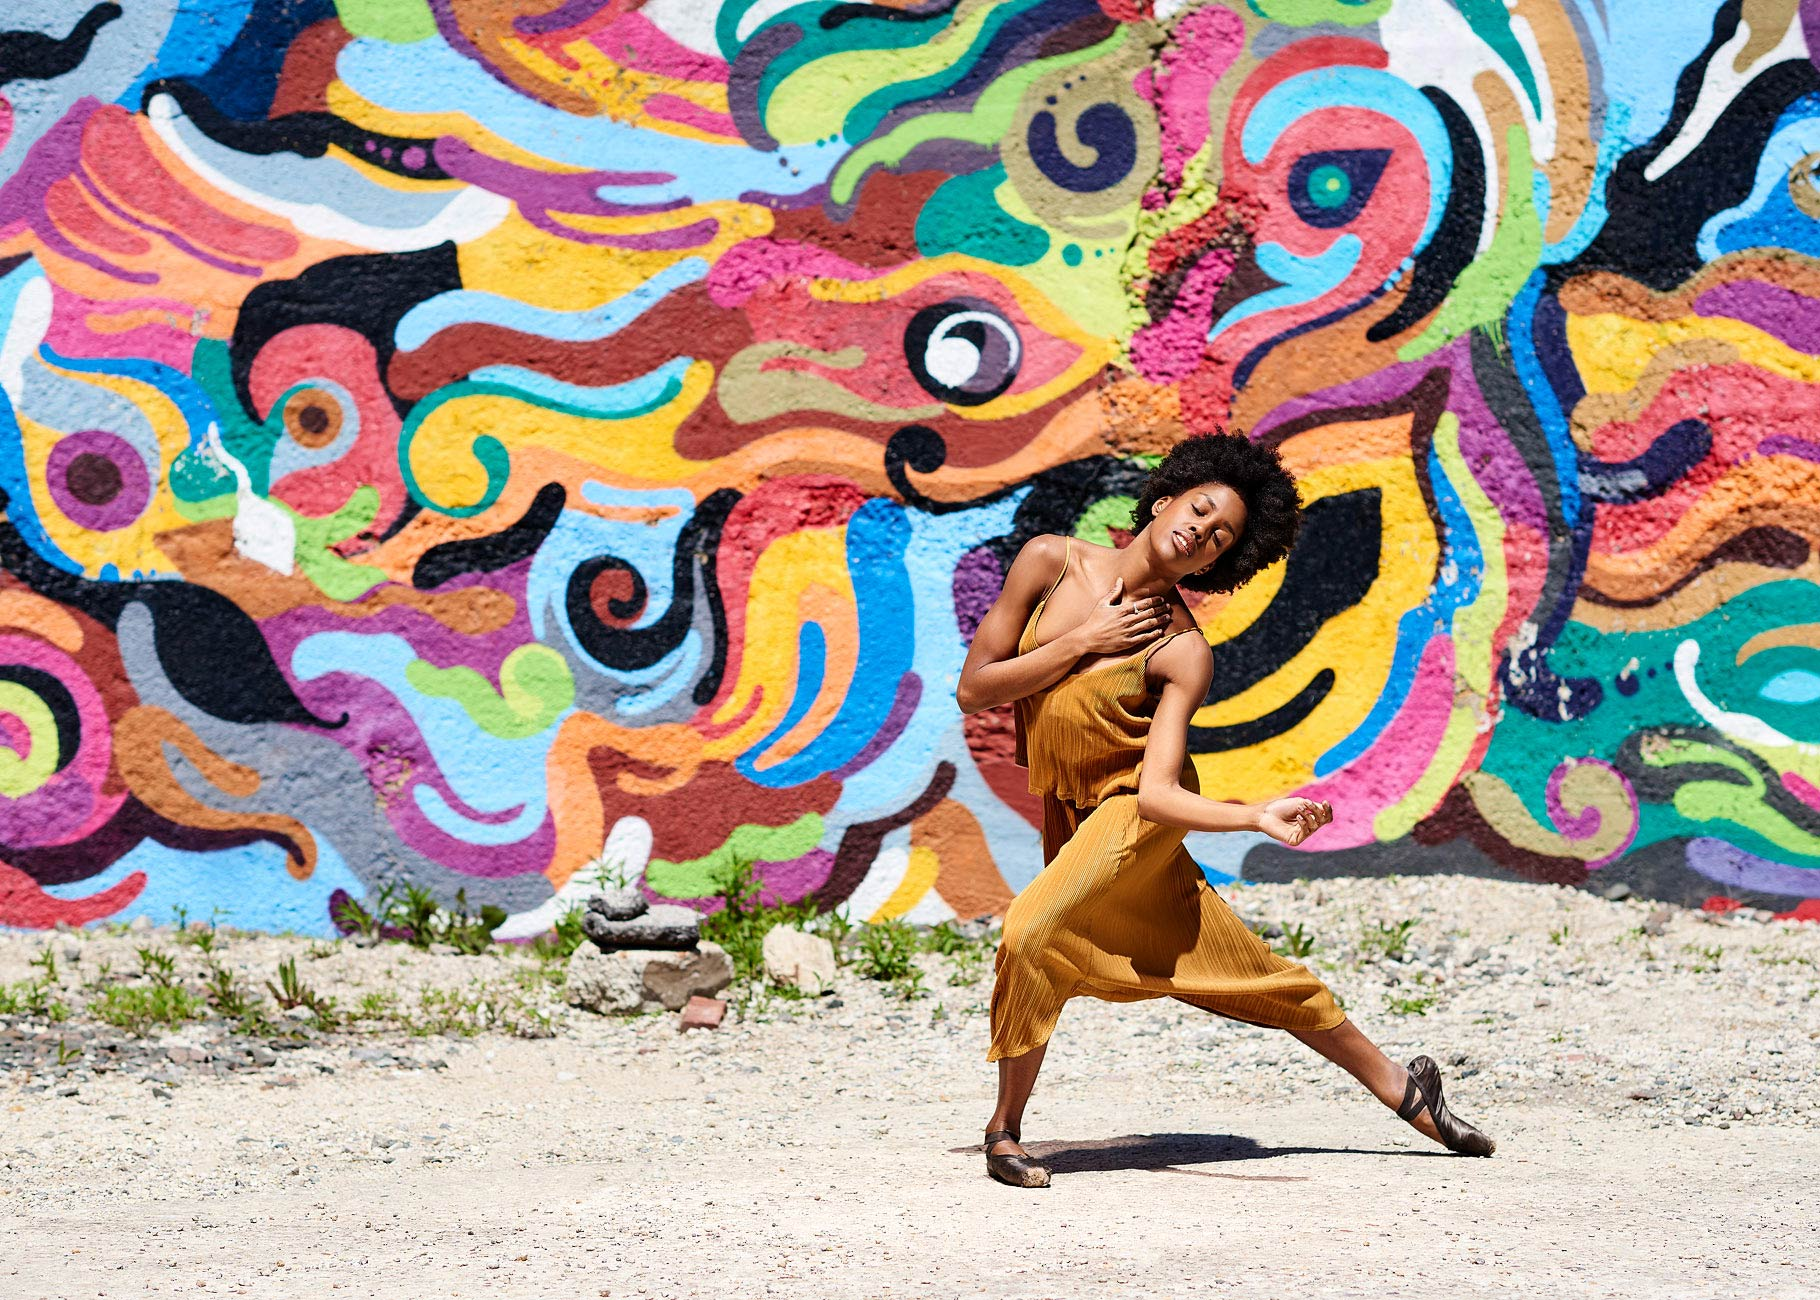 African American ballet dancer posing with colorful wall behind her.